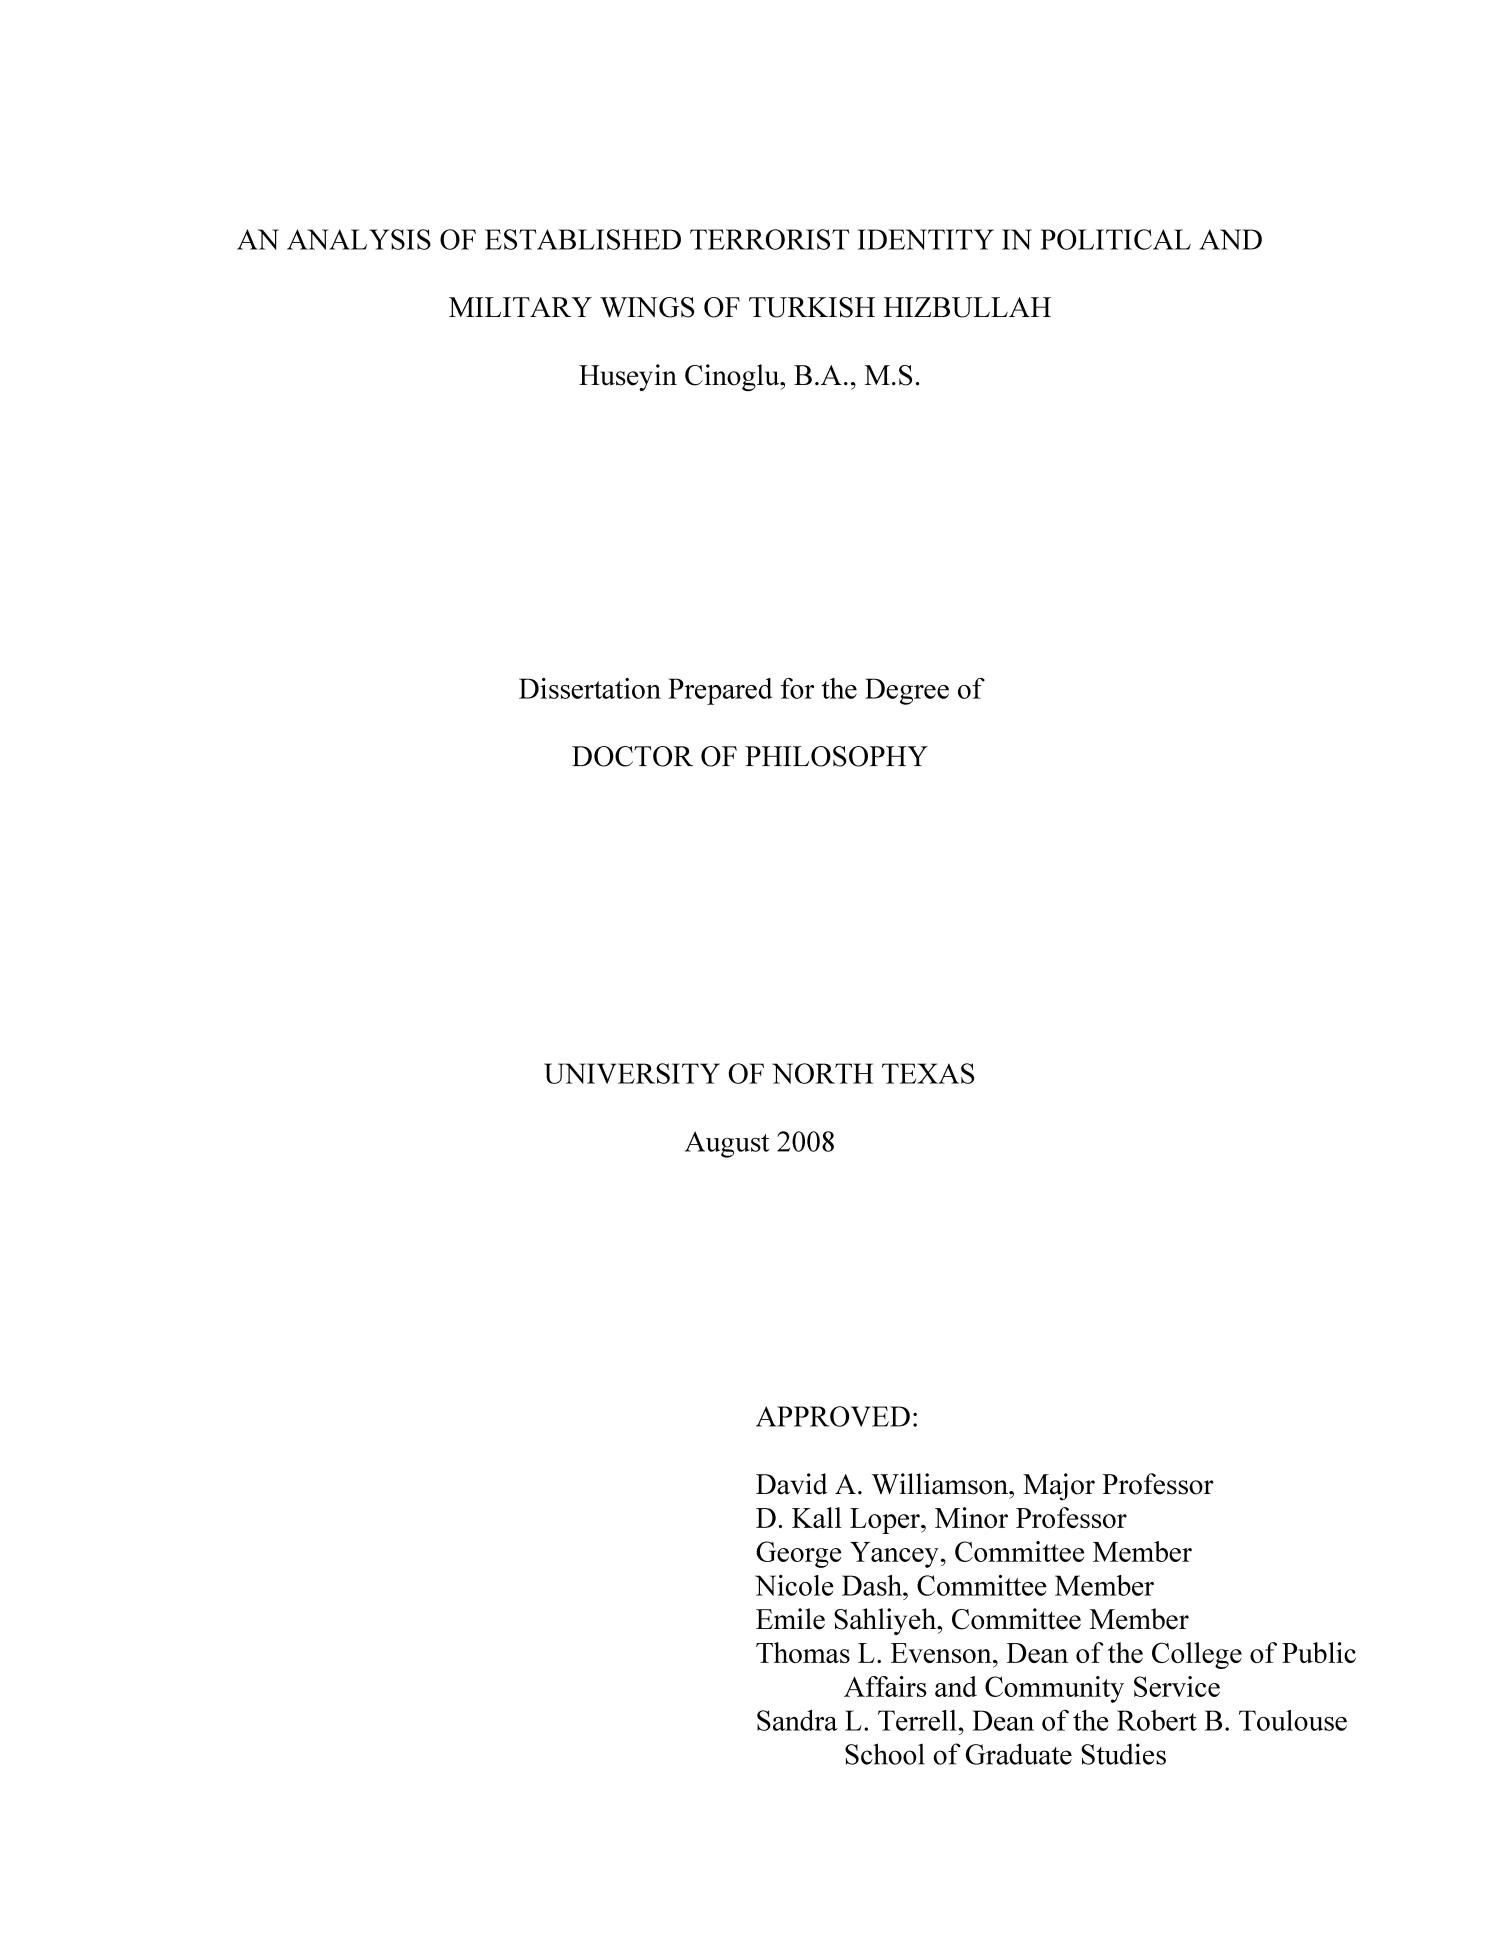 An Analysis of Established Terrorist Identity in Political and Military Wings of Turkish Hizbullah                                                                                                      Title Page